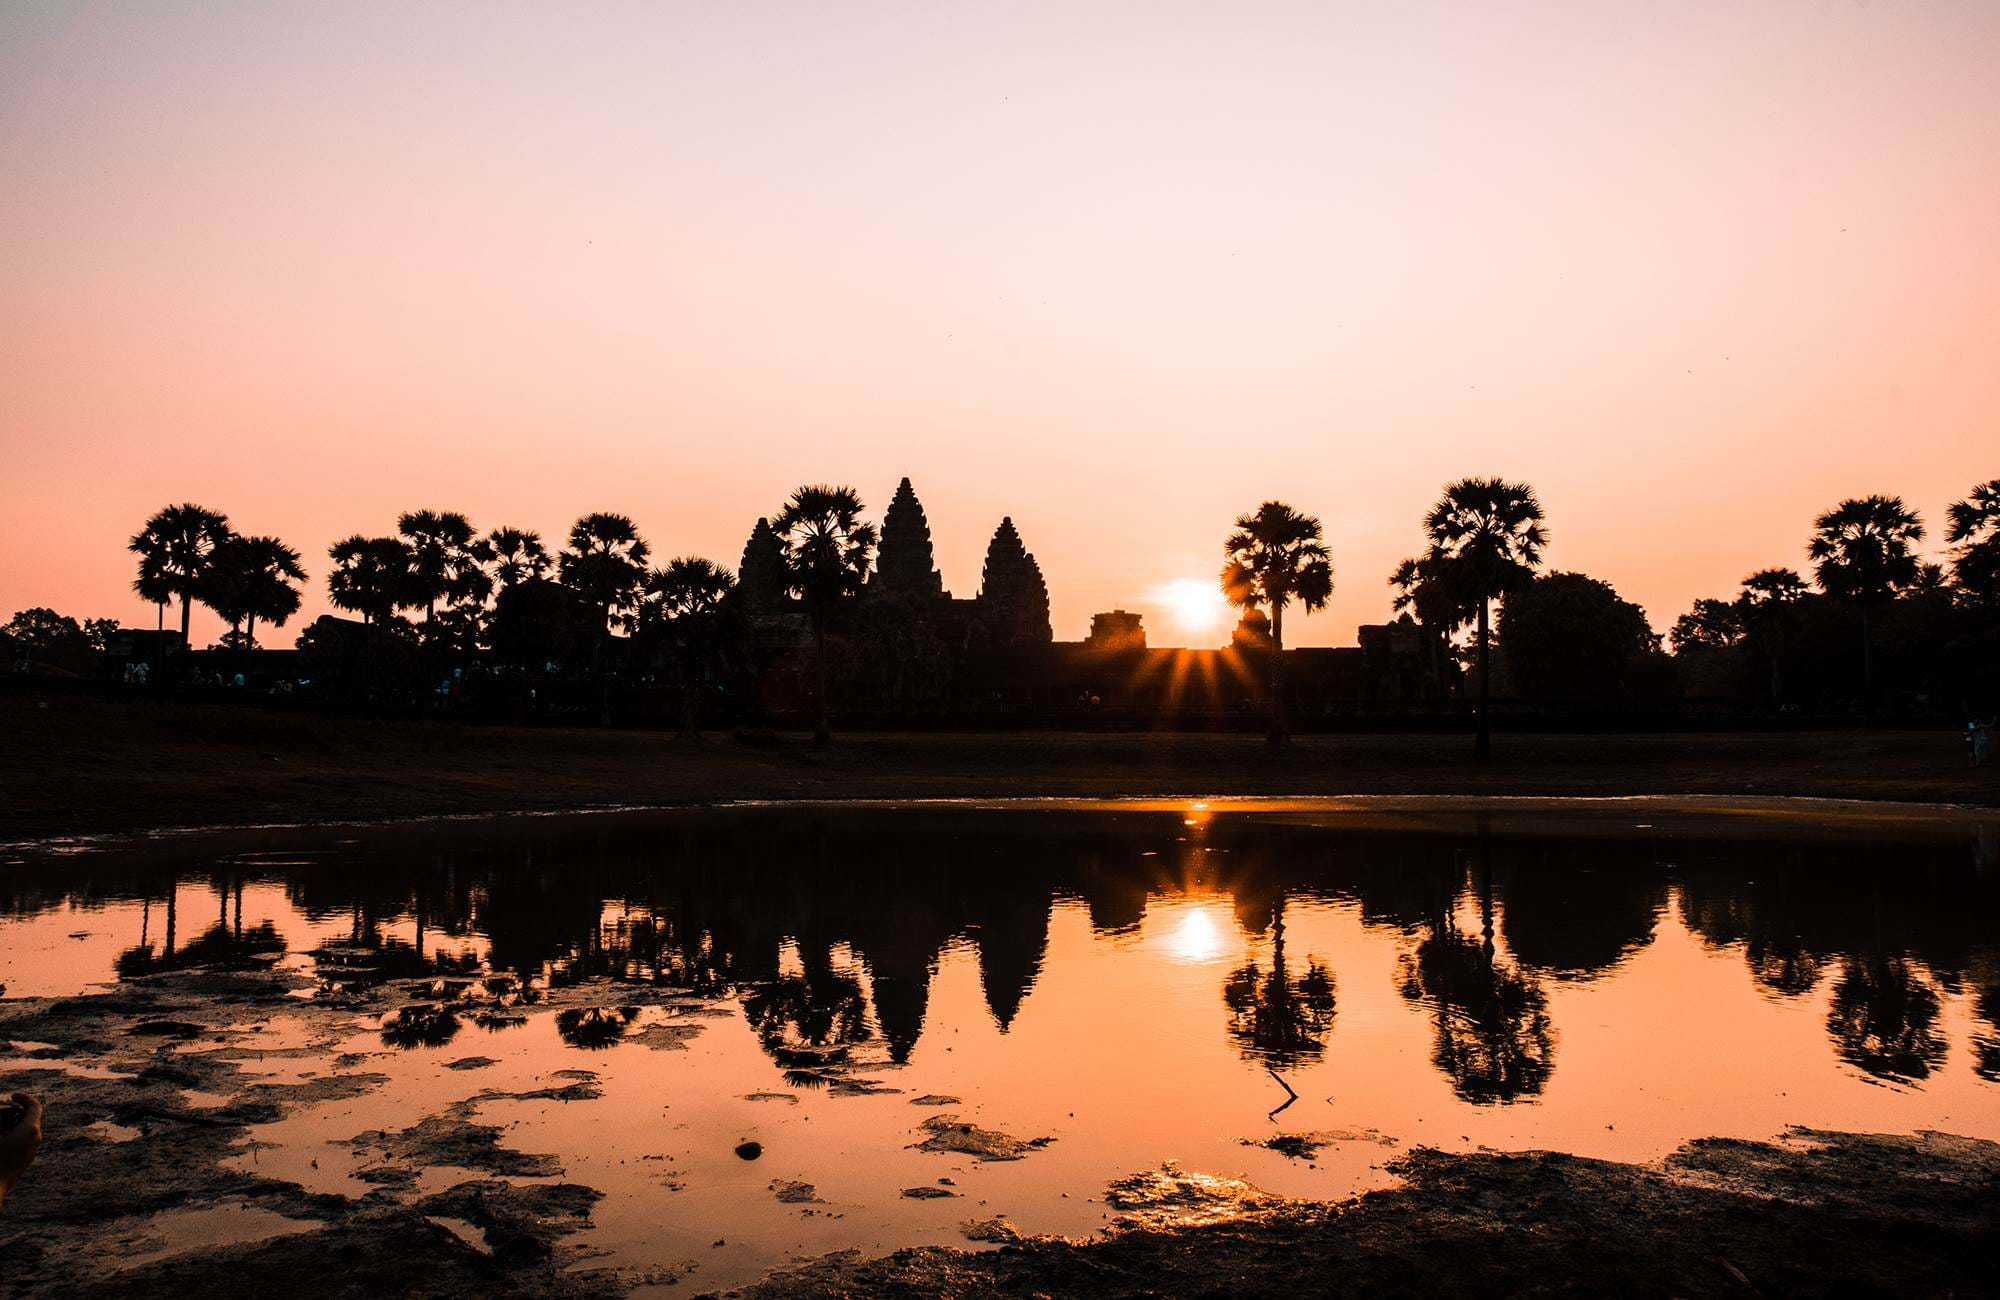 angkor-wat-cambodia-sunset-cover